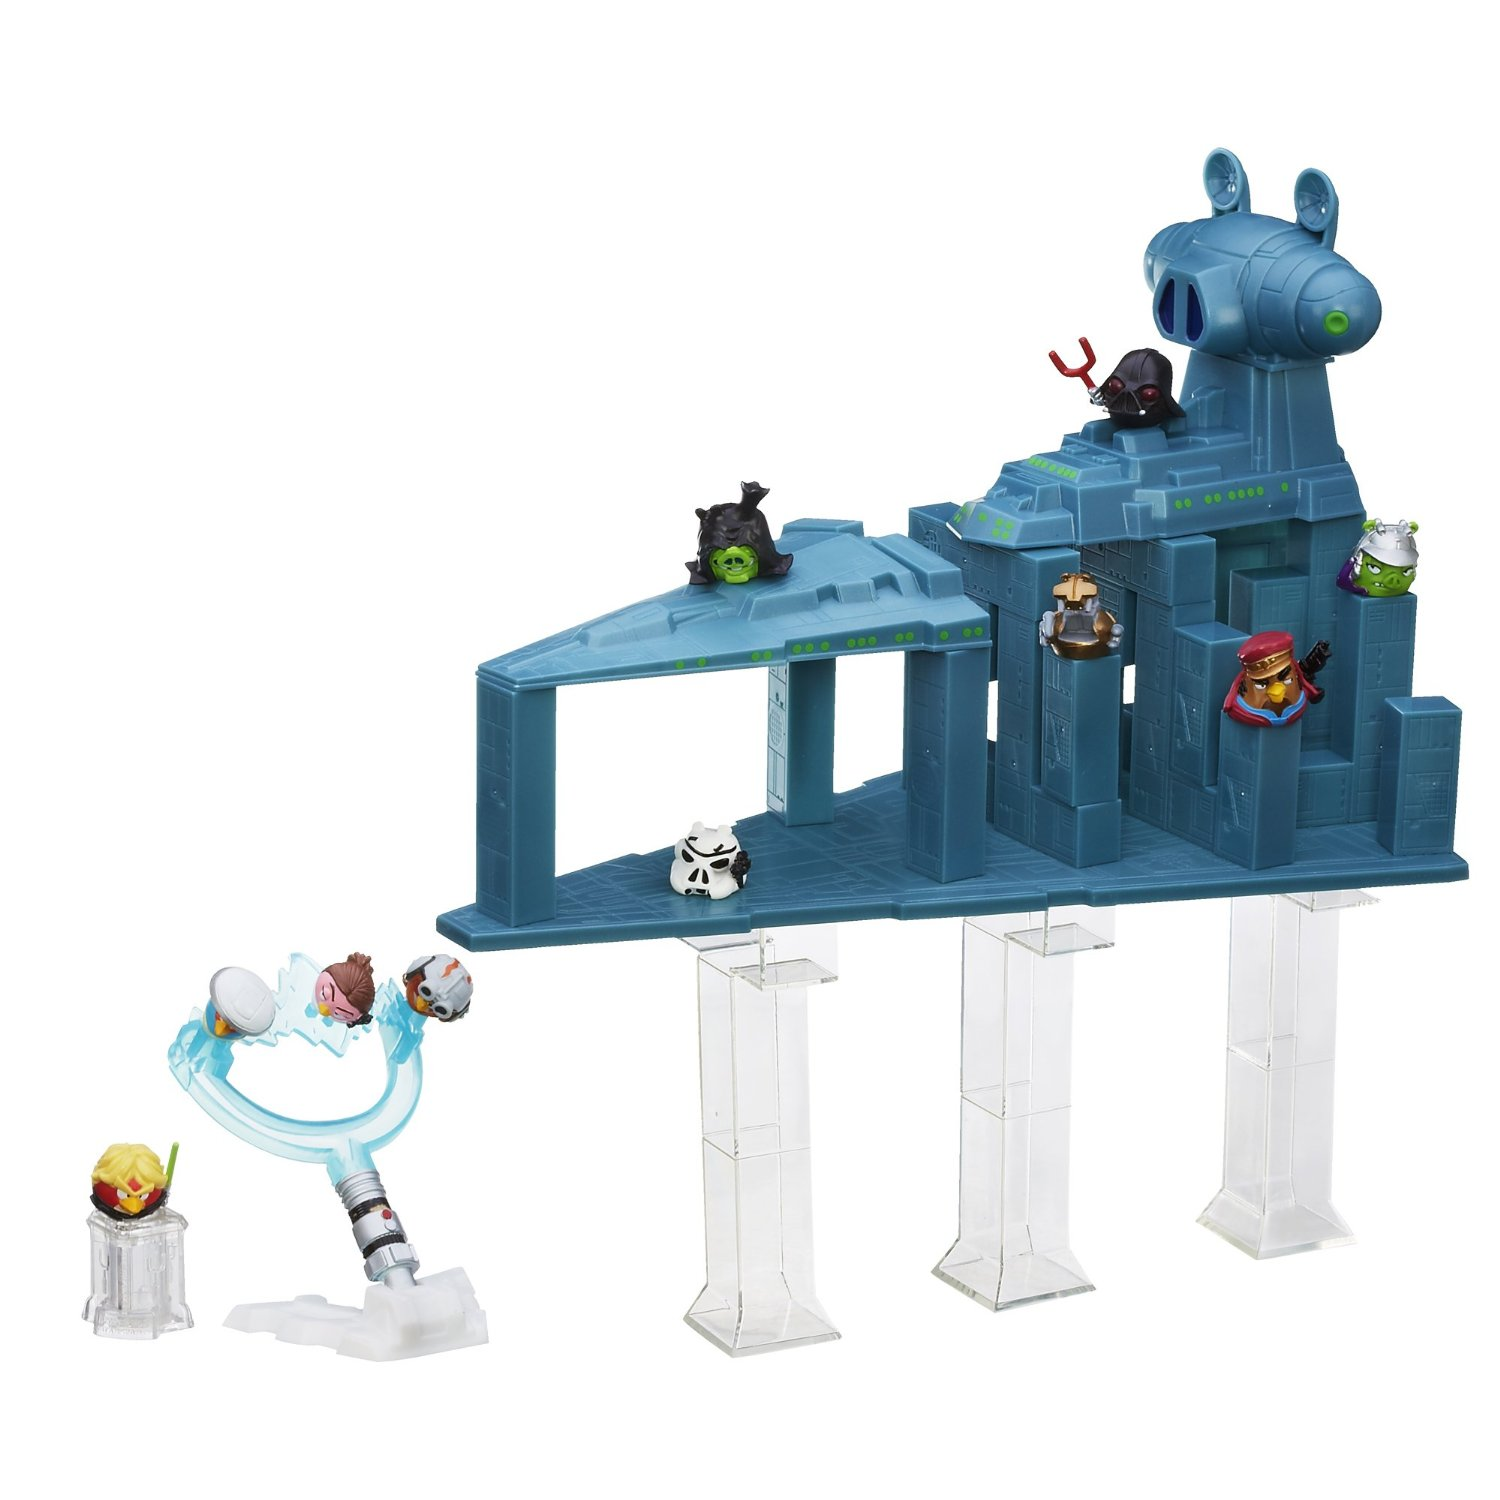 Angry Birds Star Wars Toys : Angry birds toys telepods star wars destroyer set at toystop